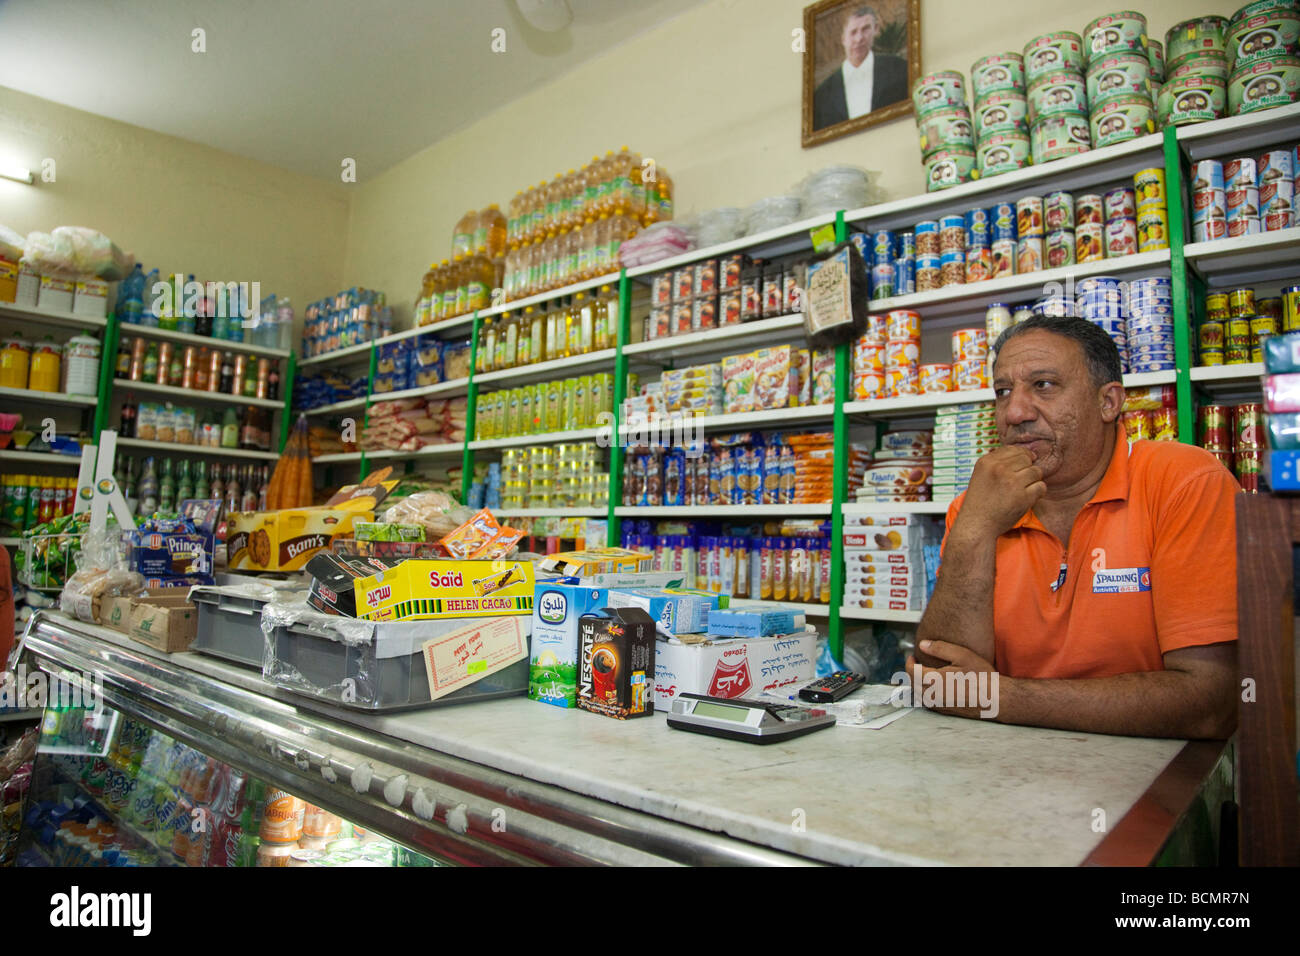 Man in a grocery store in Tozeur, Tunisia - Stock Image